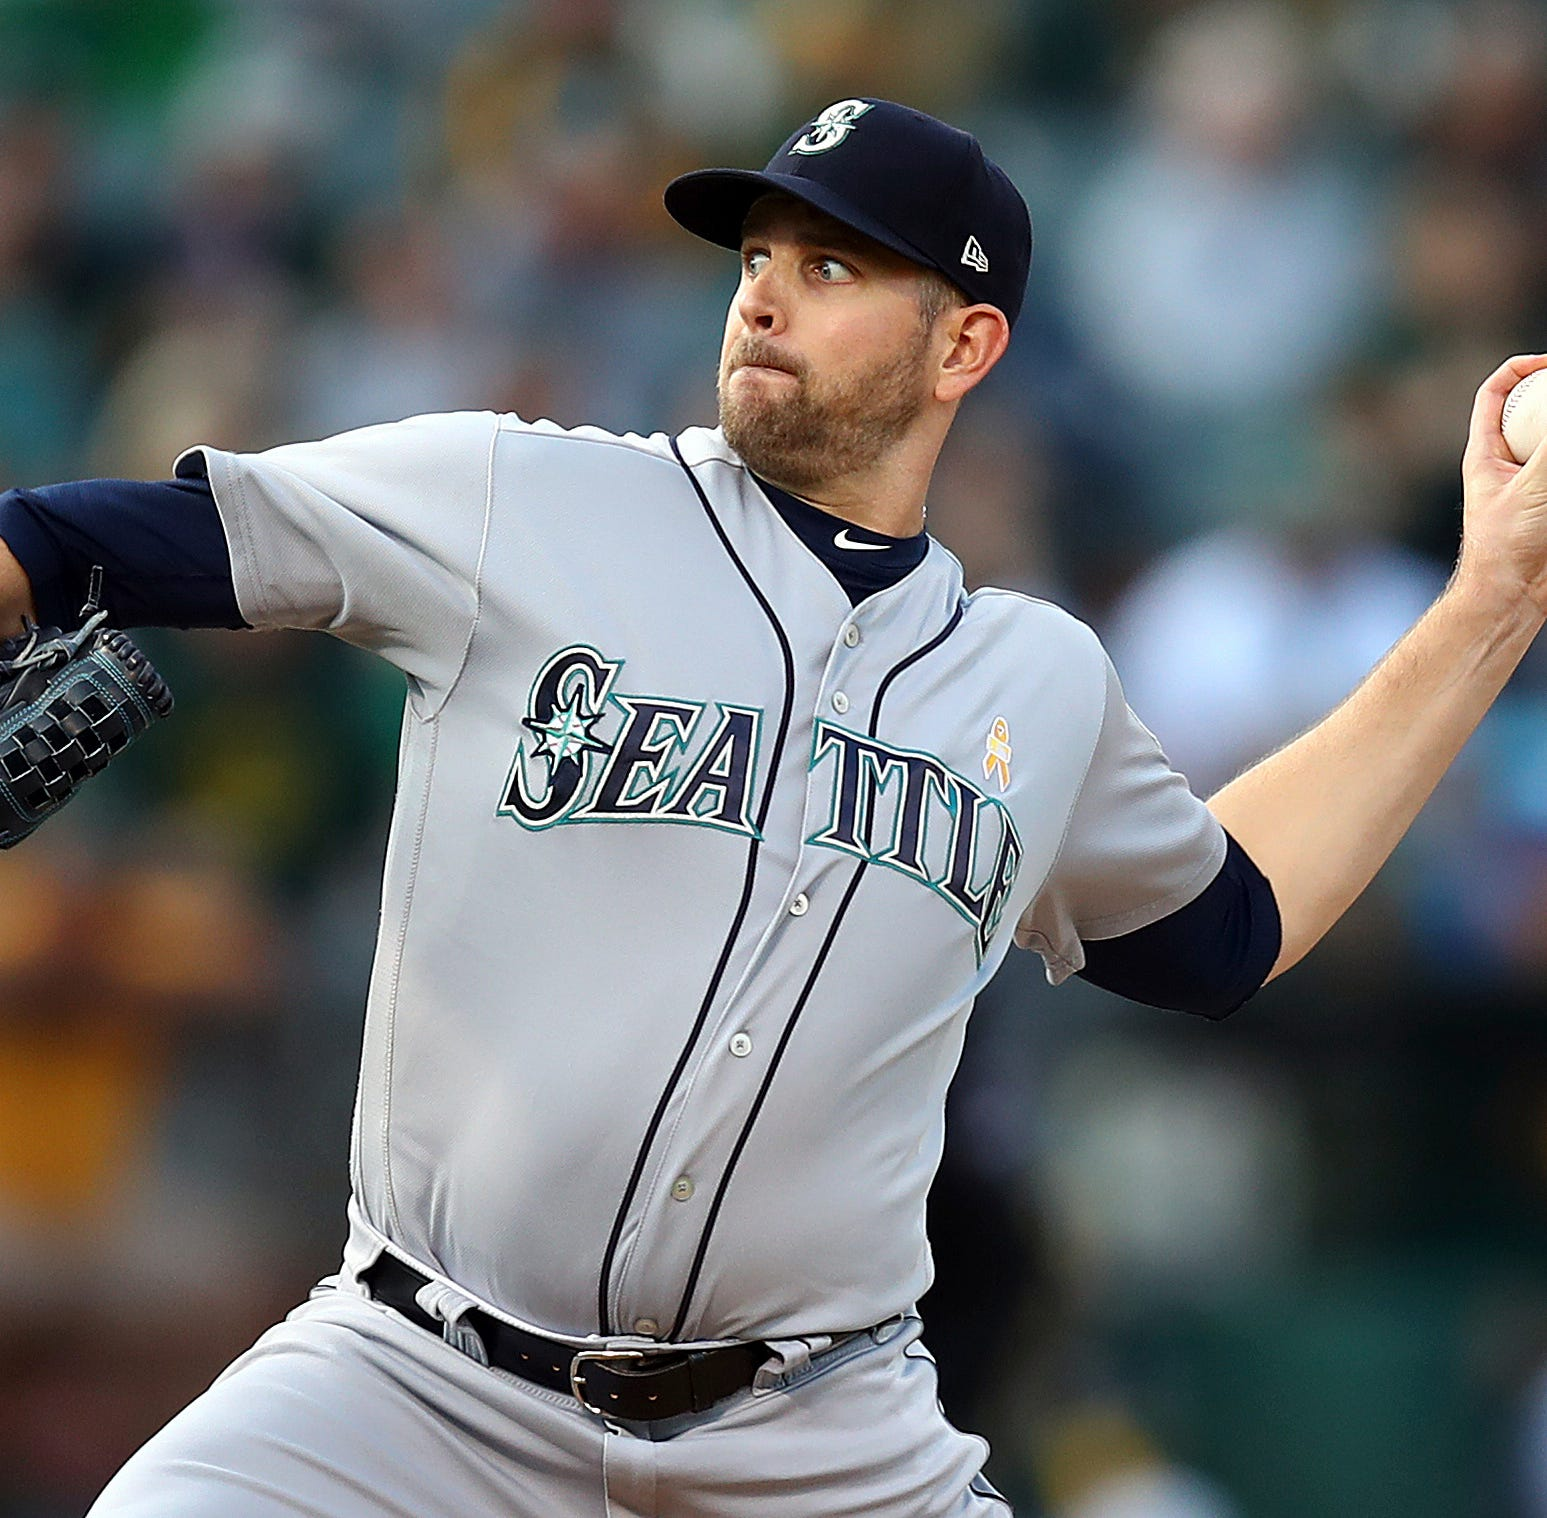 New York Yankees trade for pitcher James Paxton in deal including Justus Sheffield